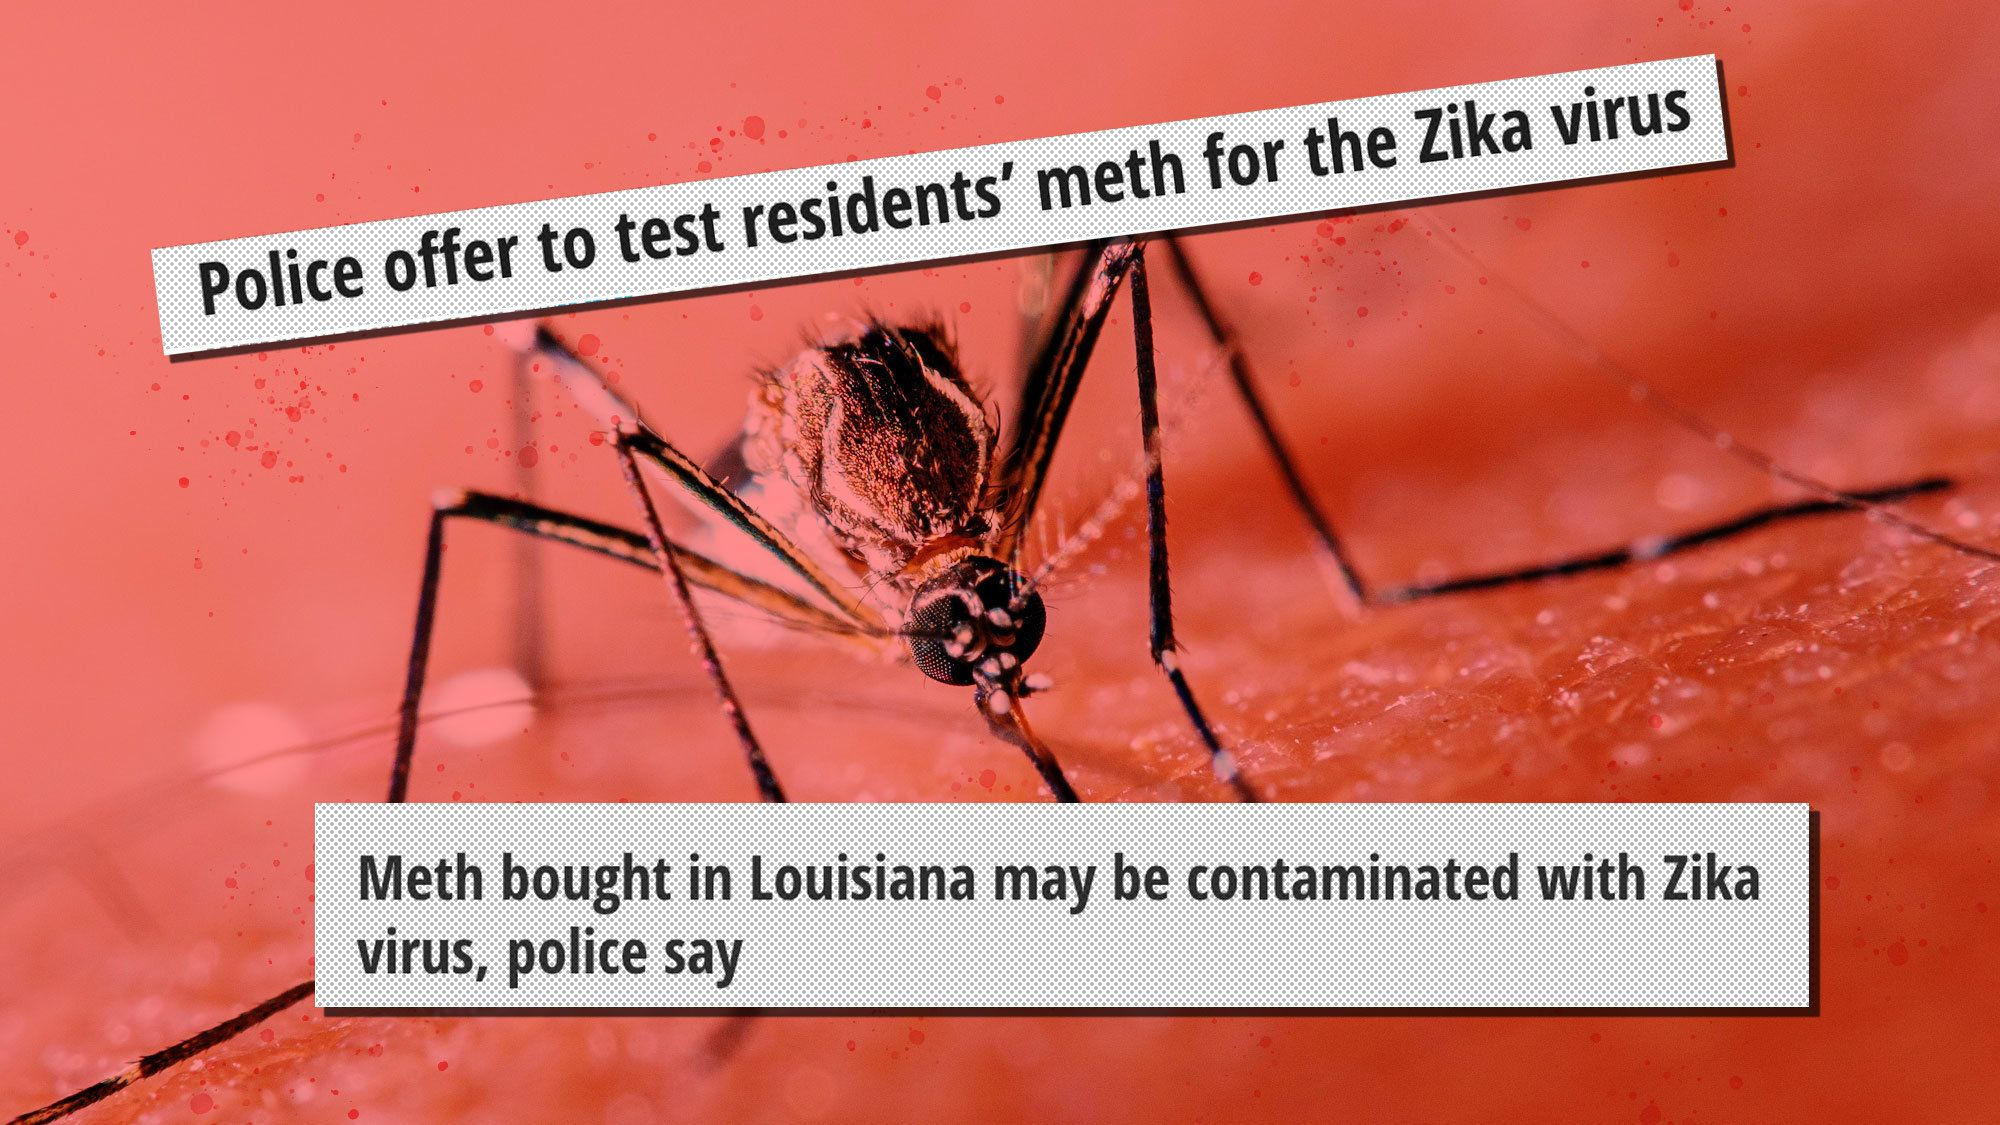 Cops: We're Worried About Zika in Your Meth. Let Us Test It.